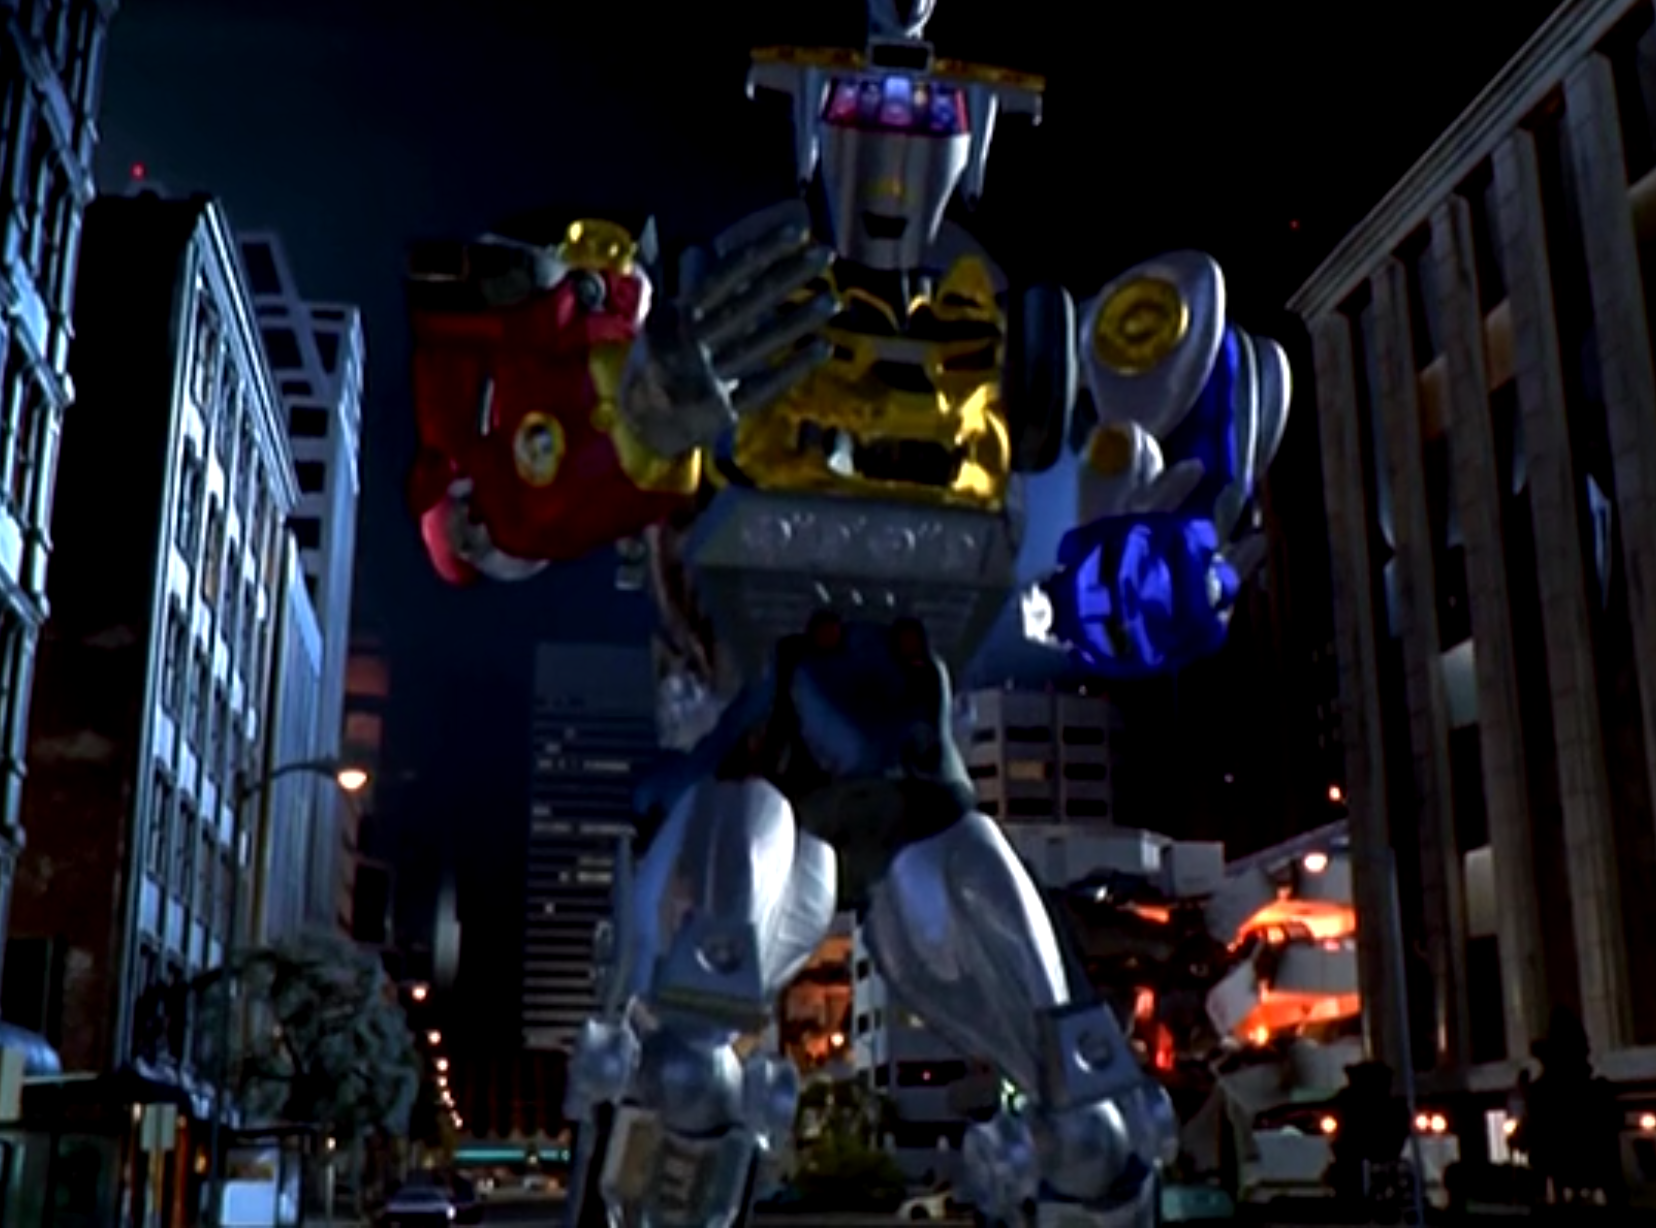 b100355157494ed377bf4052a352d7f5 e1624891731943 The Best (And Worst) Movie Robots